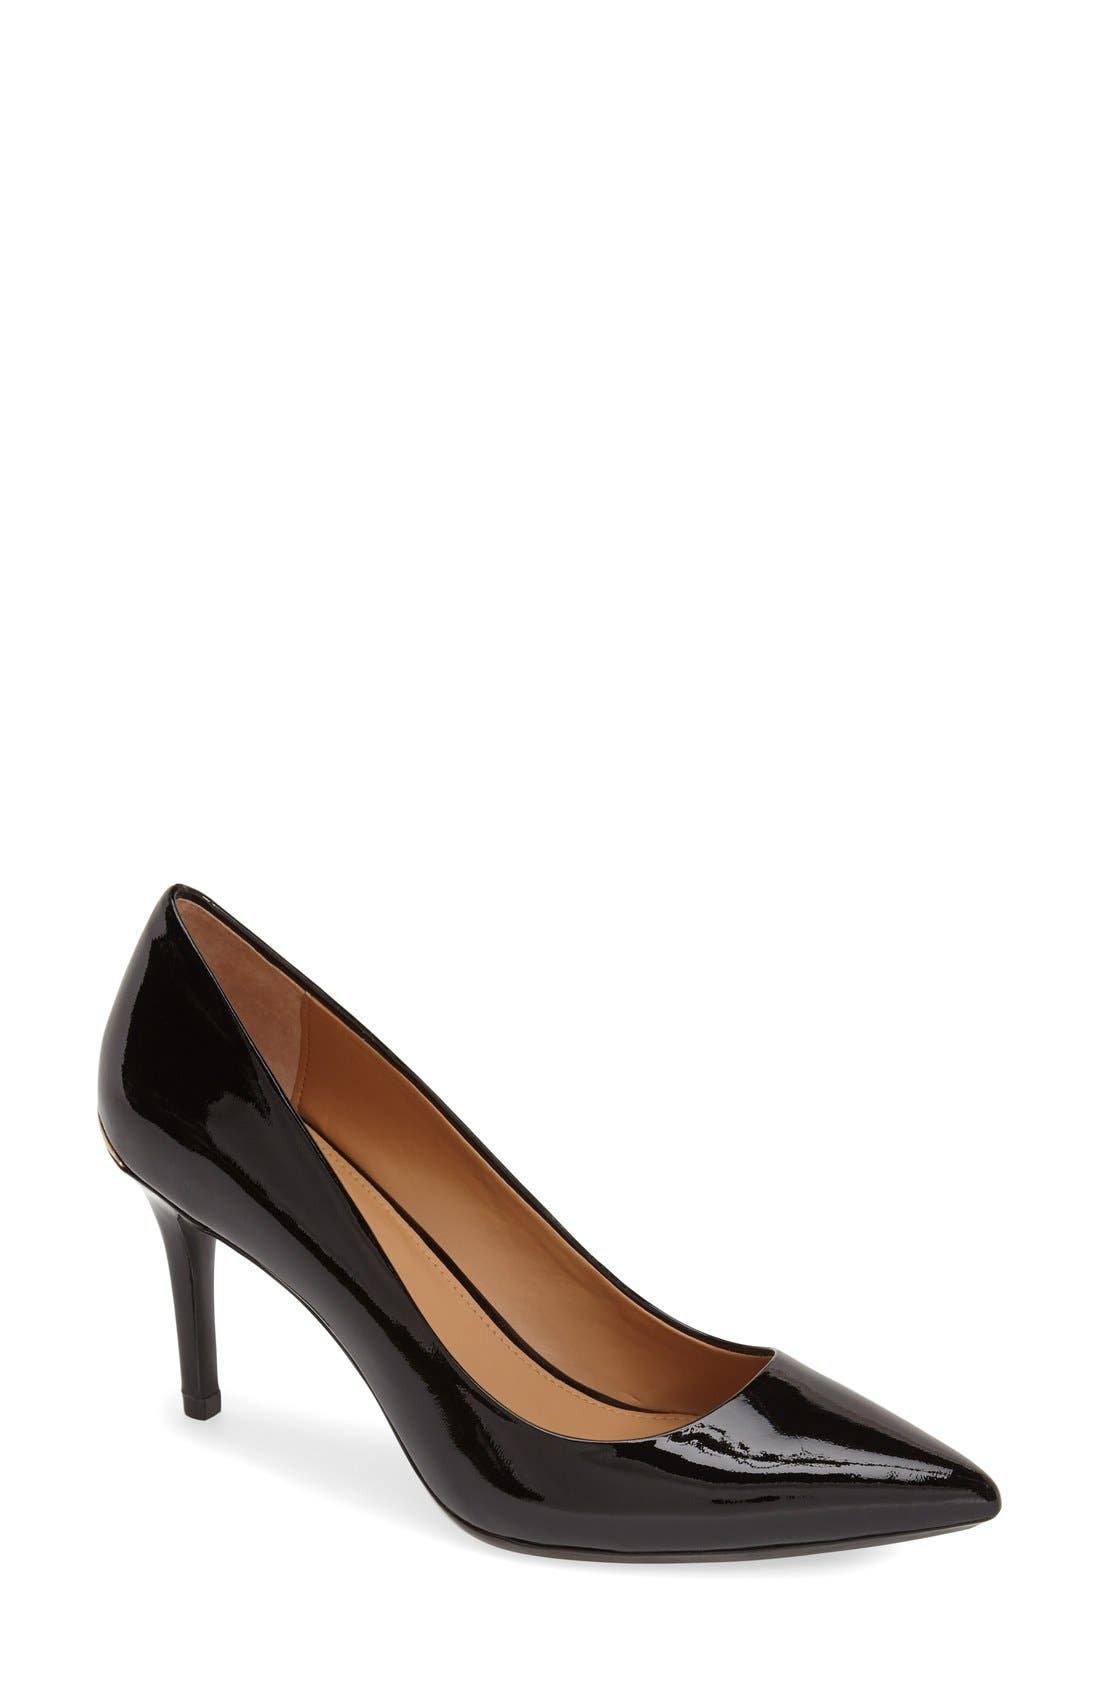 Main Image - Calvin Klein 'Gayle' Pointy Toe Pump (Women)